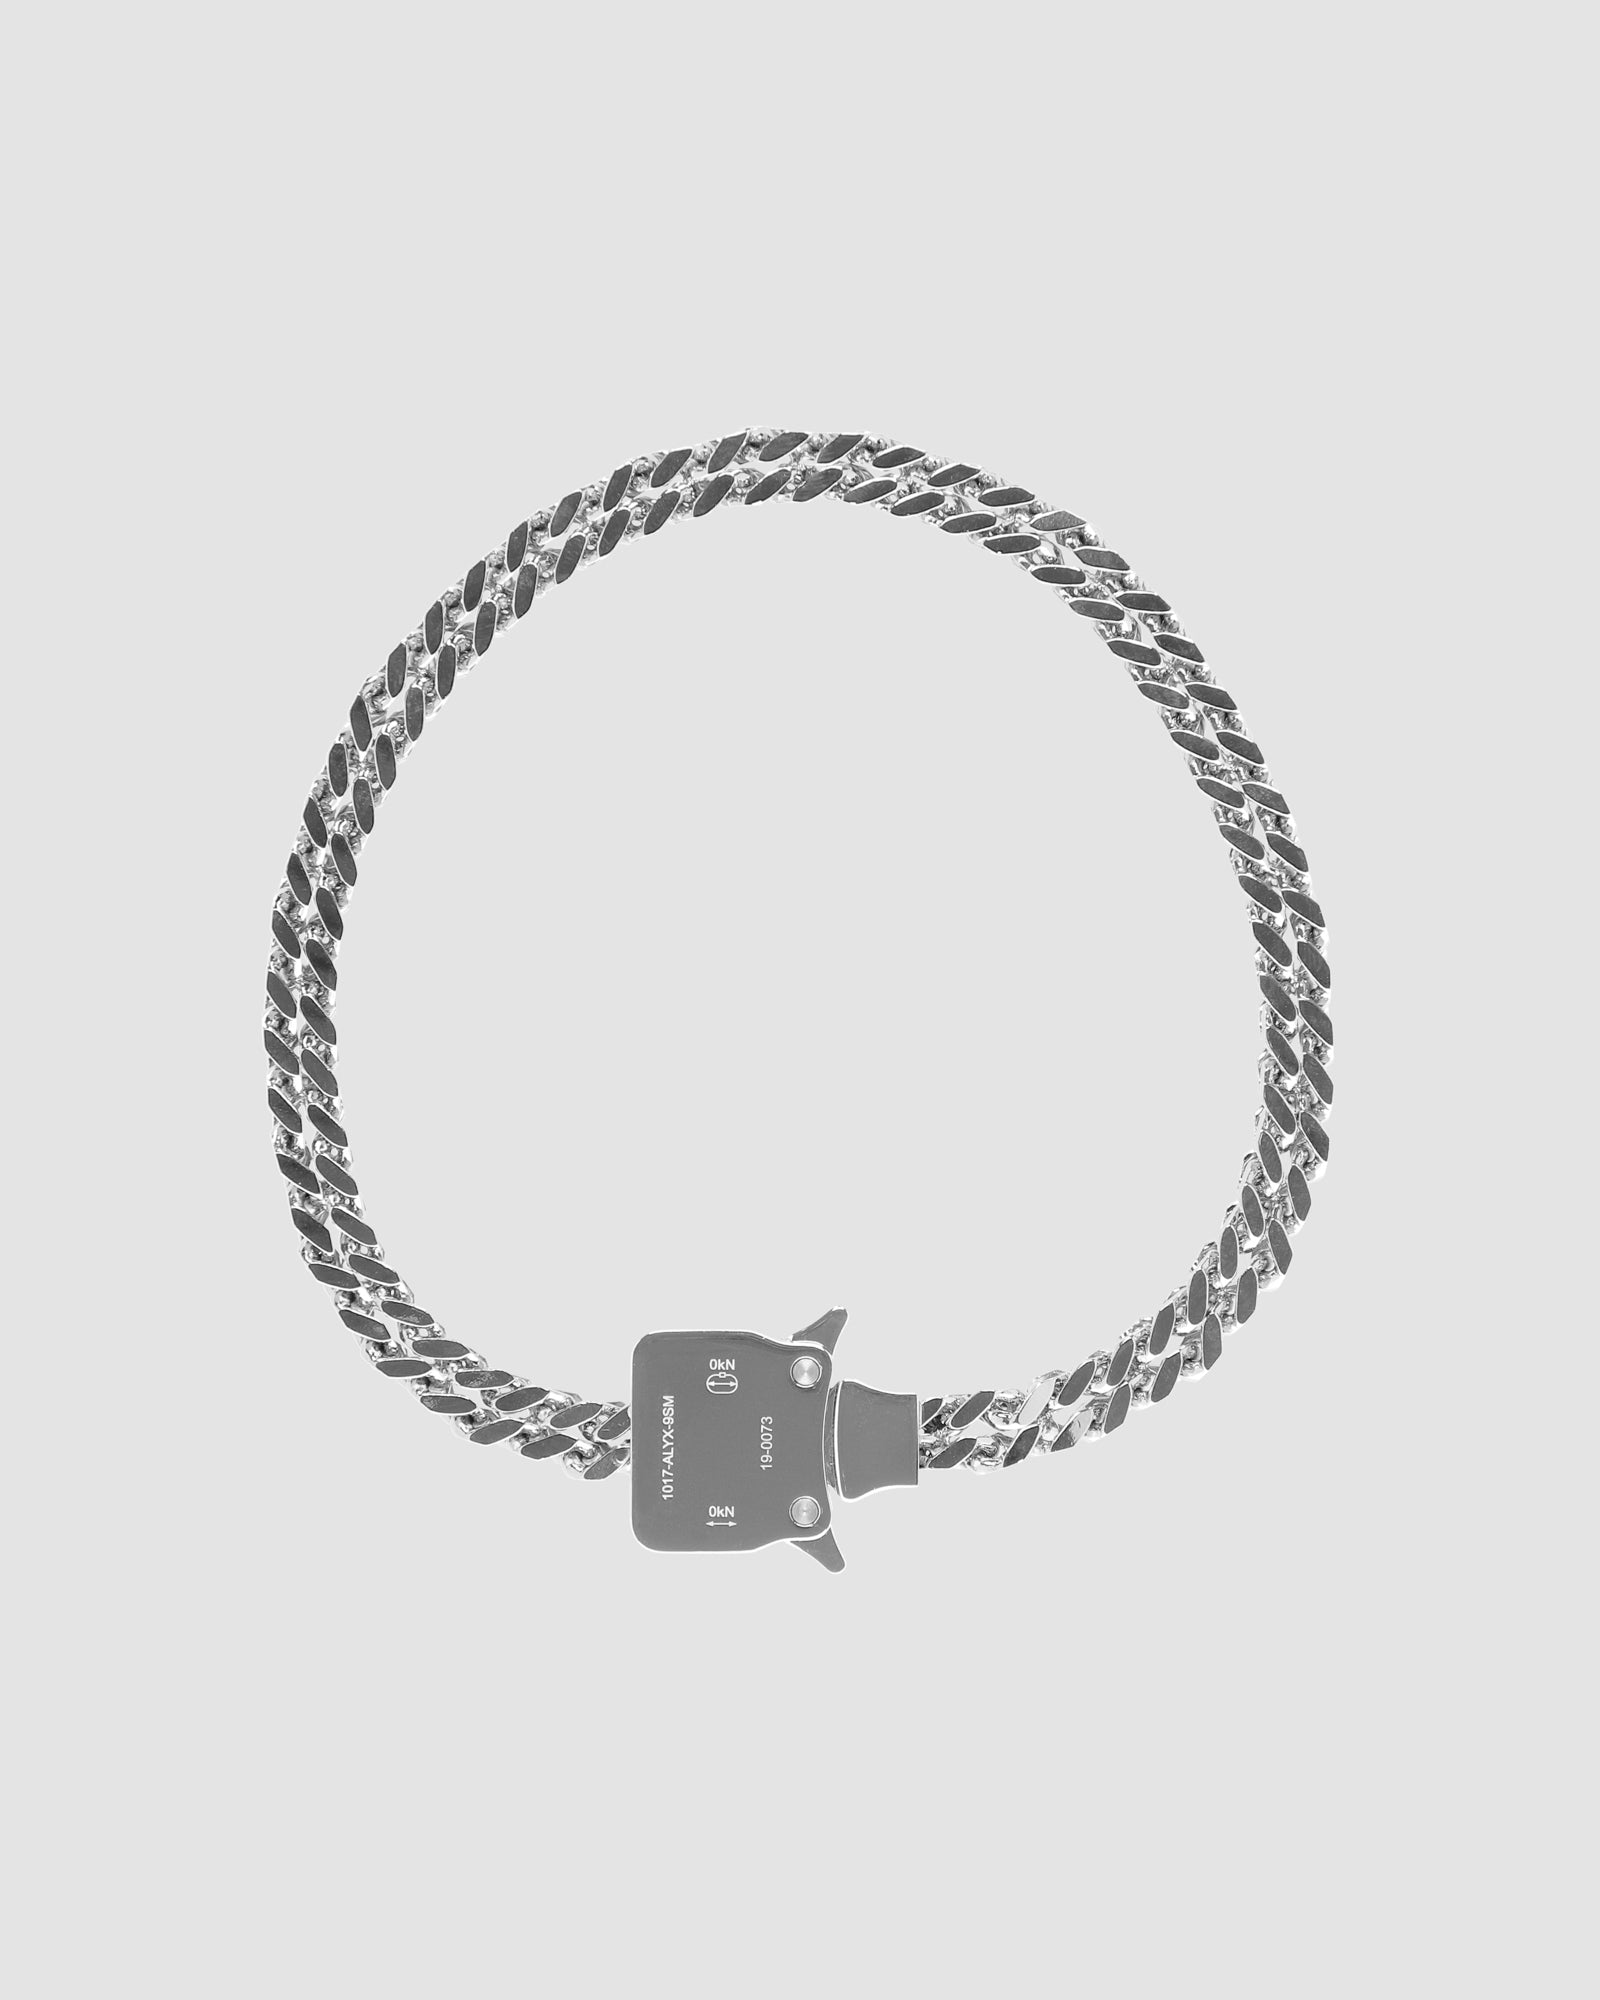 1017 ALYX 9SM | CUBIX MINI NECKLACE | Jewellery | Accessories, Google Shopping, Jewellery, jewelry, Man, S20, S20EXSH, SILVER, UNISEX, Woman